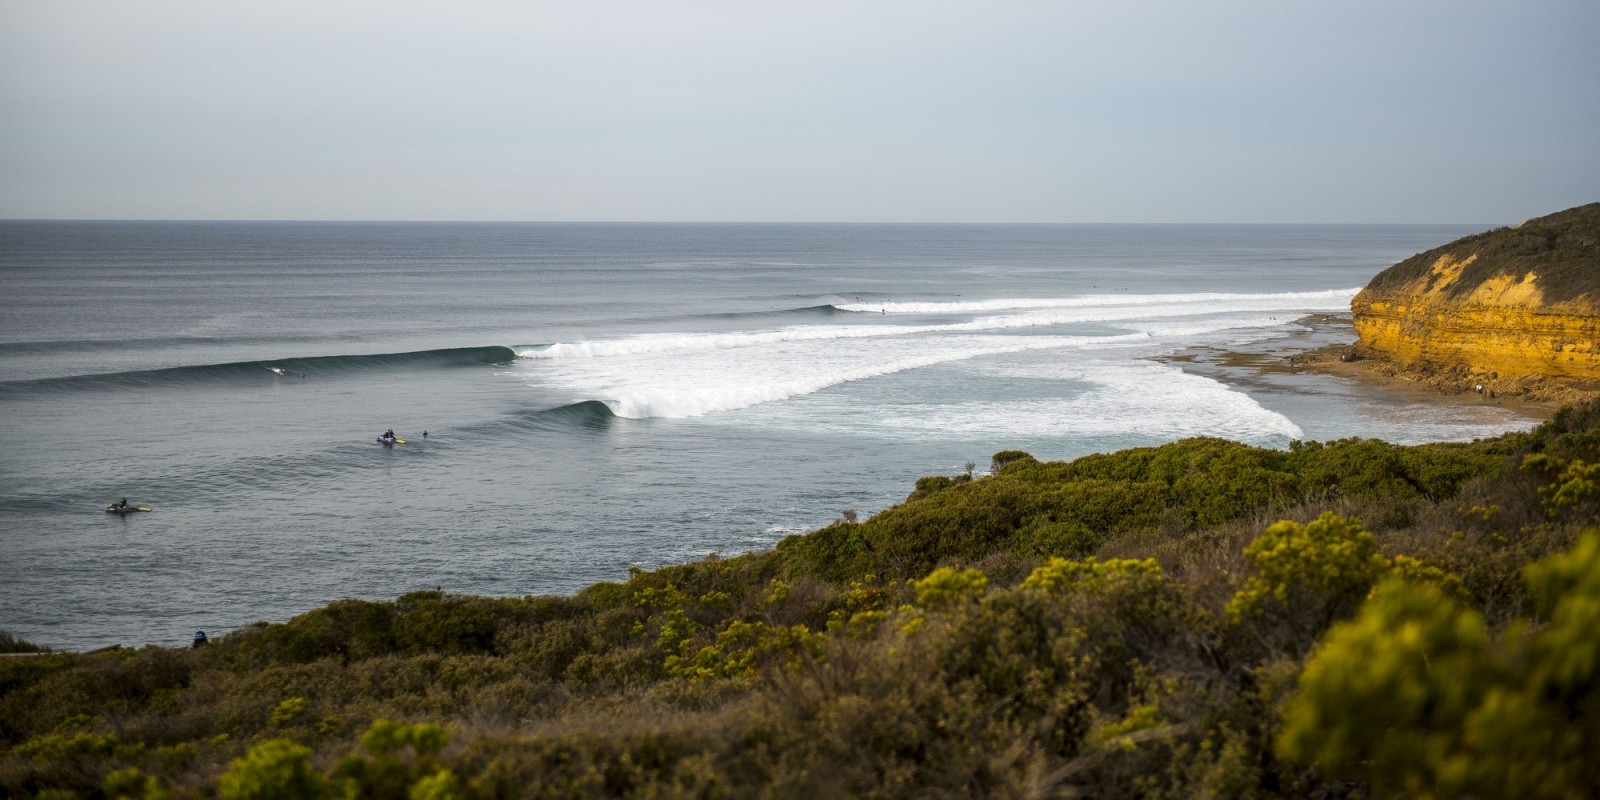 On the southeast corner of Australia, just outside of the sleepy surf town of Torquay, sits Bells Beach, which hosts the third stop of the WSL's championship tour, and acts as a catcher's mitt for Southern Ocean swells.